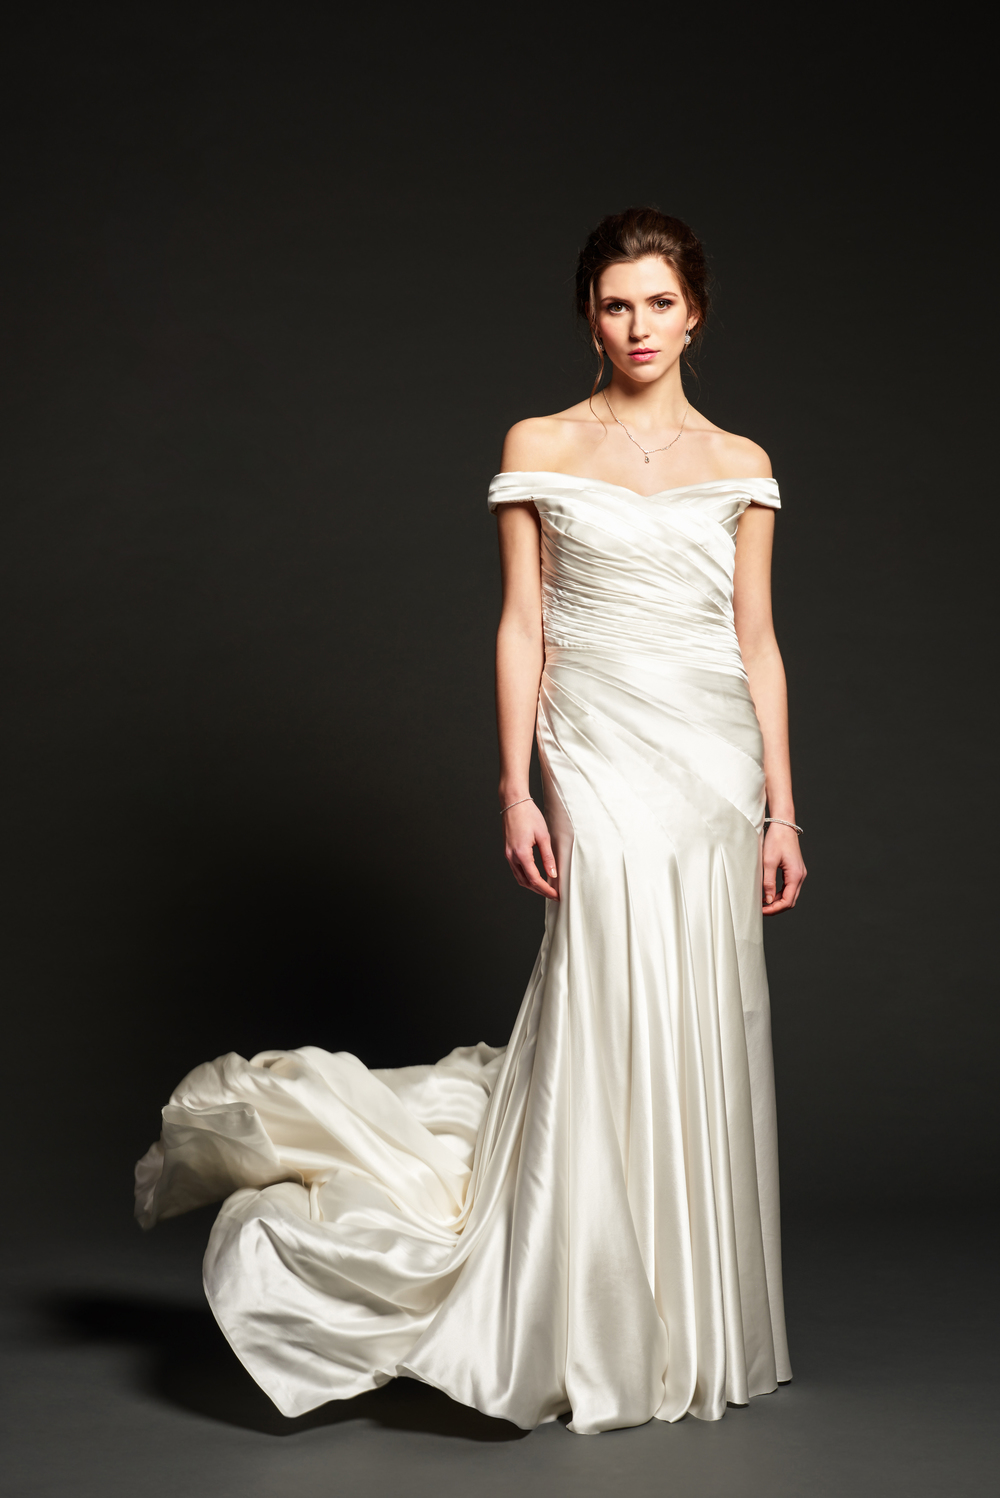 160213_GEMMA LEAKEY BRIDAL - DRESS 07-01.jpg